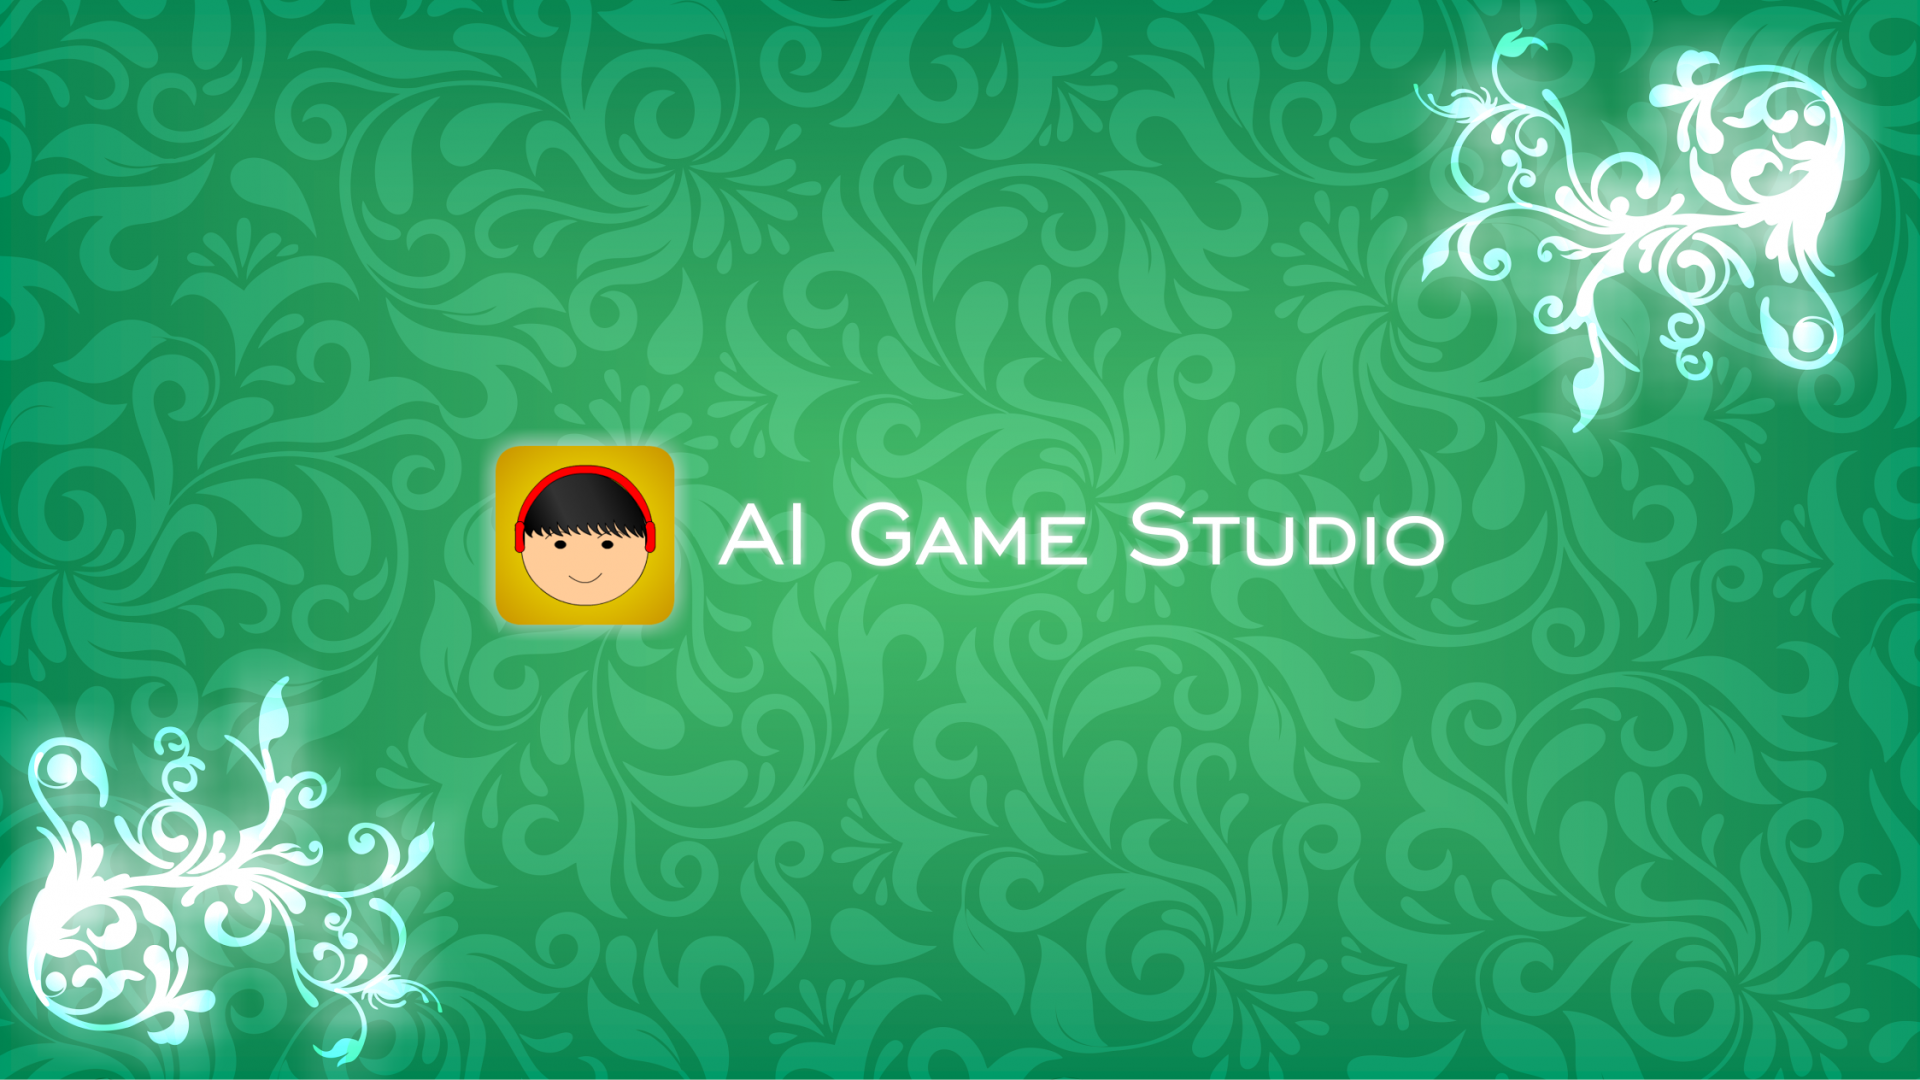 Ai Game Studio